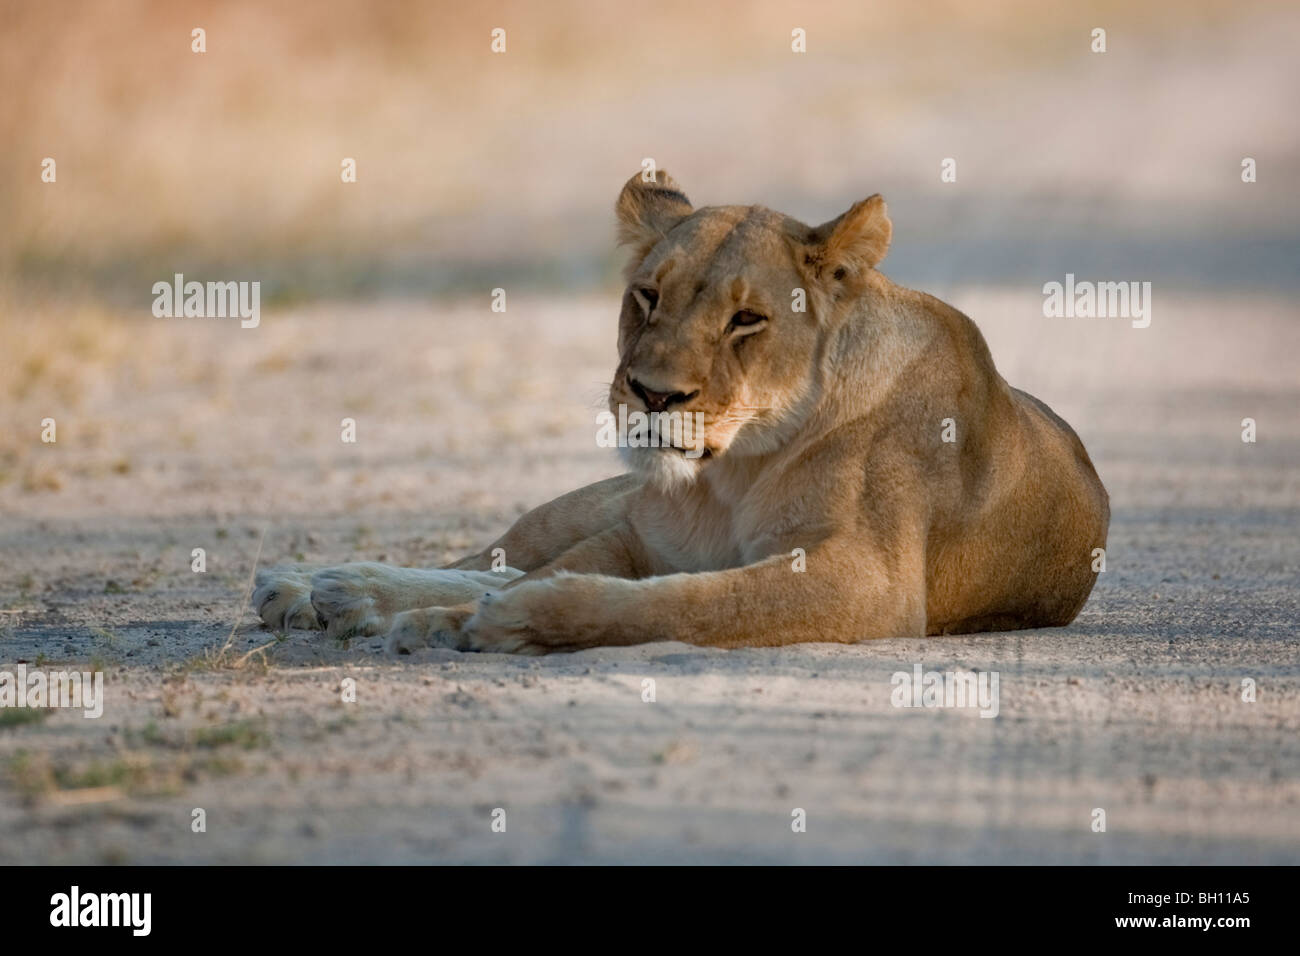 Portrait of a wild lion in southern Africa. The photo was taken in Zimbabwe's Hwange national park. Stock Photo